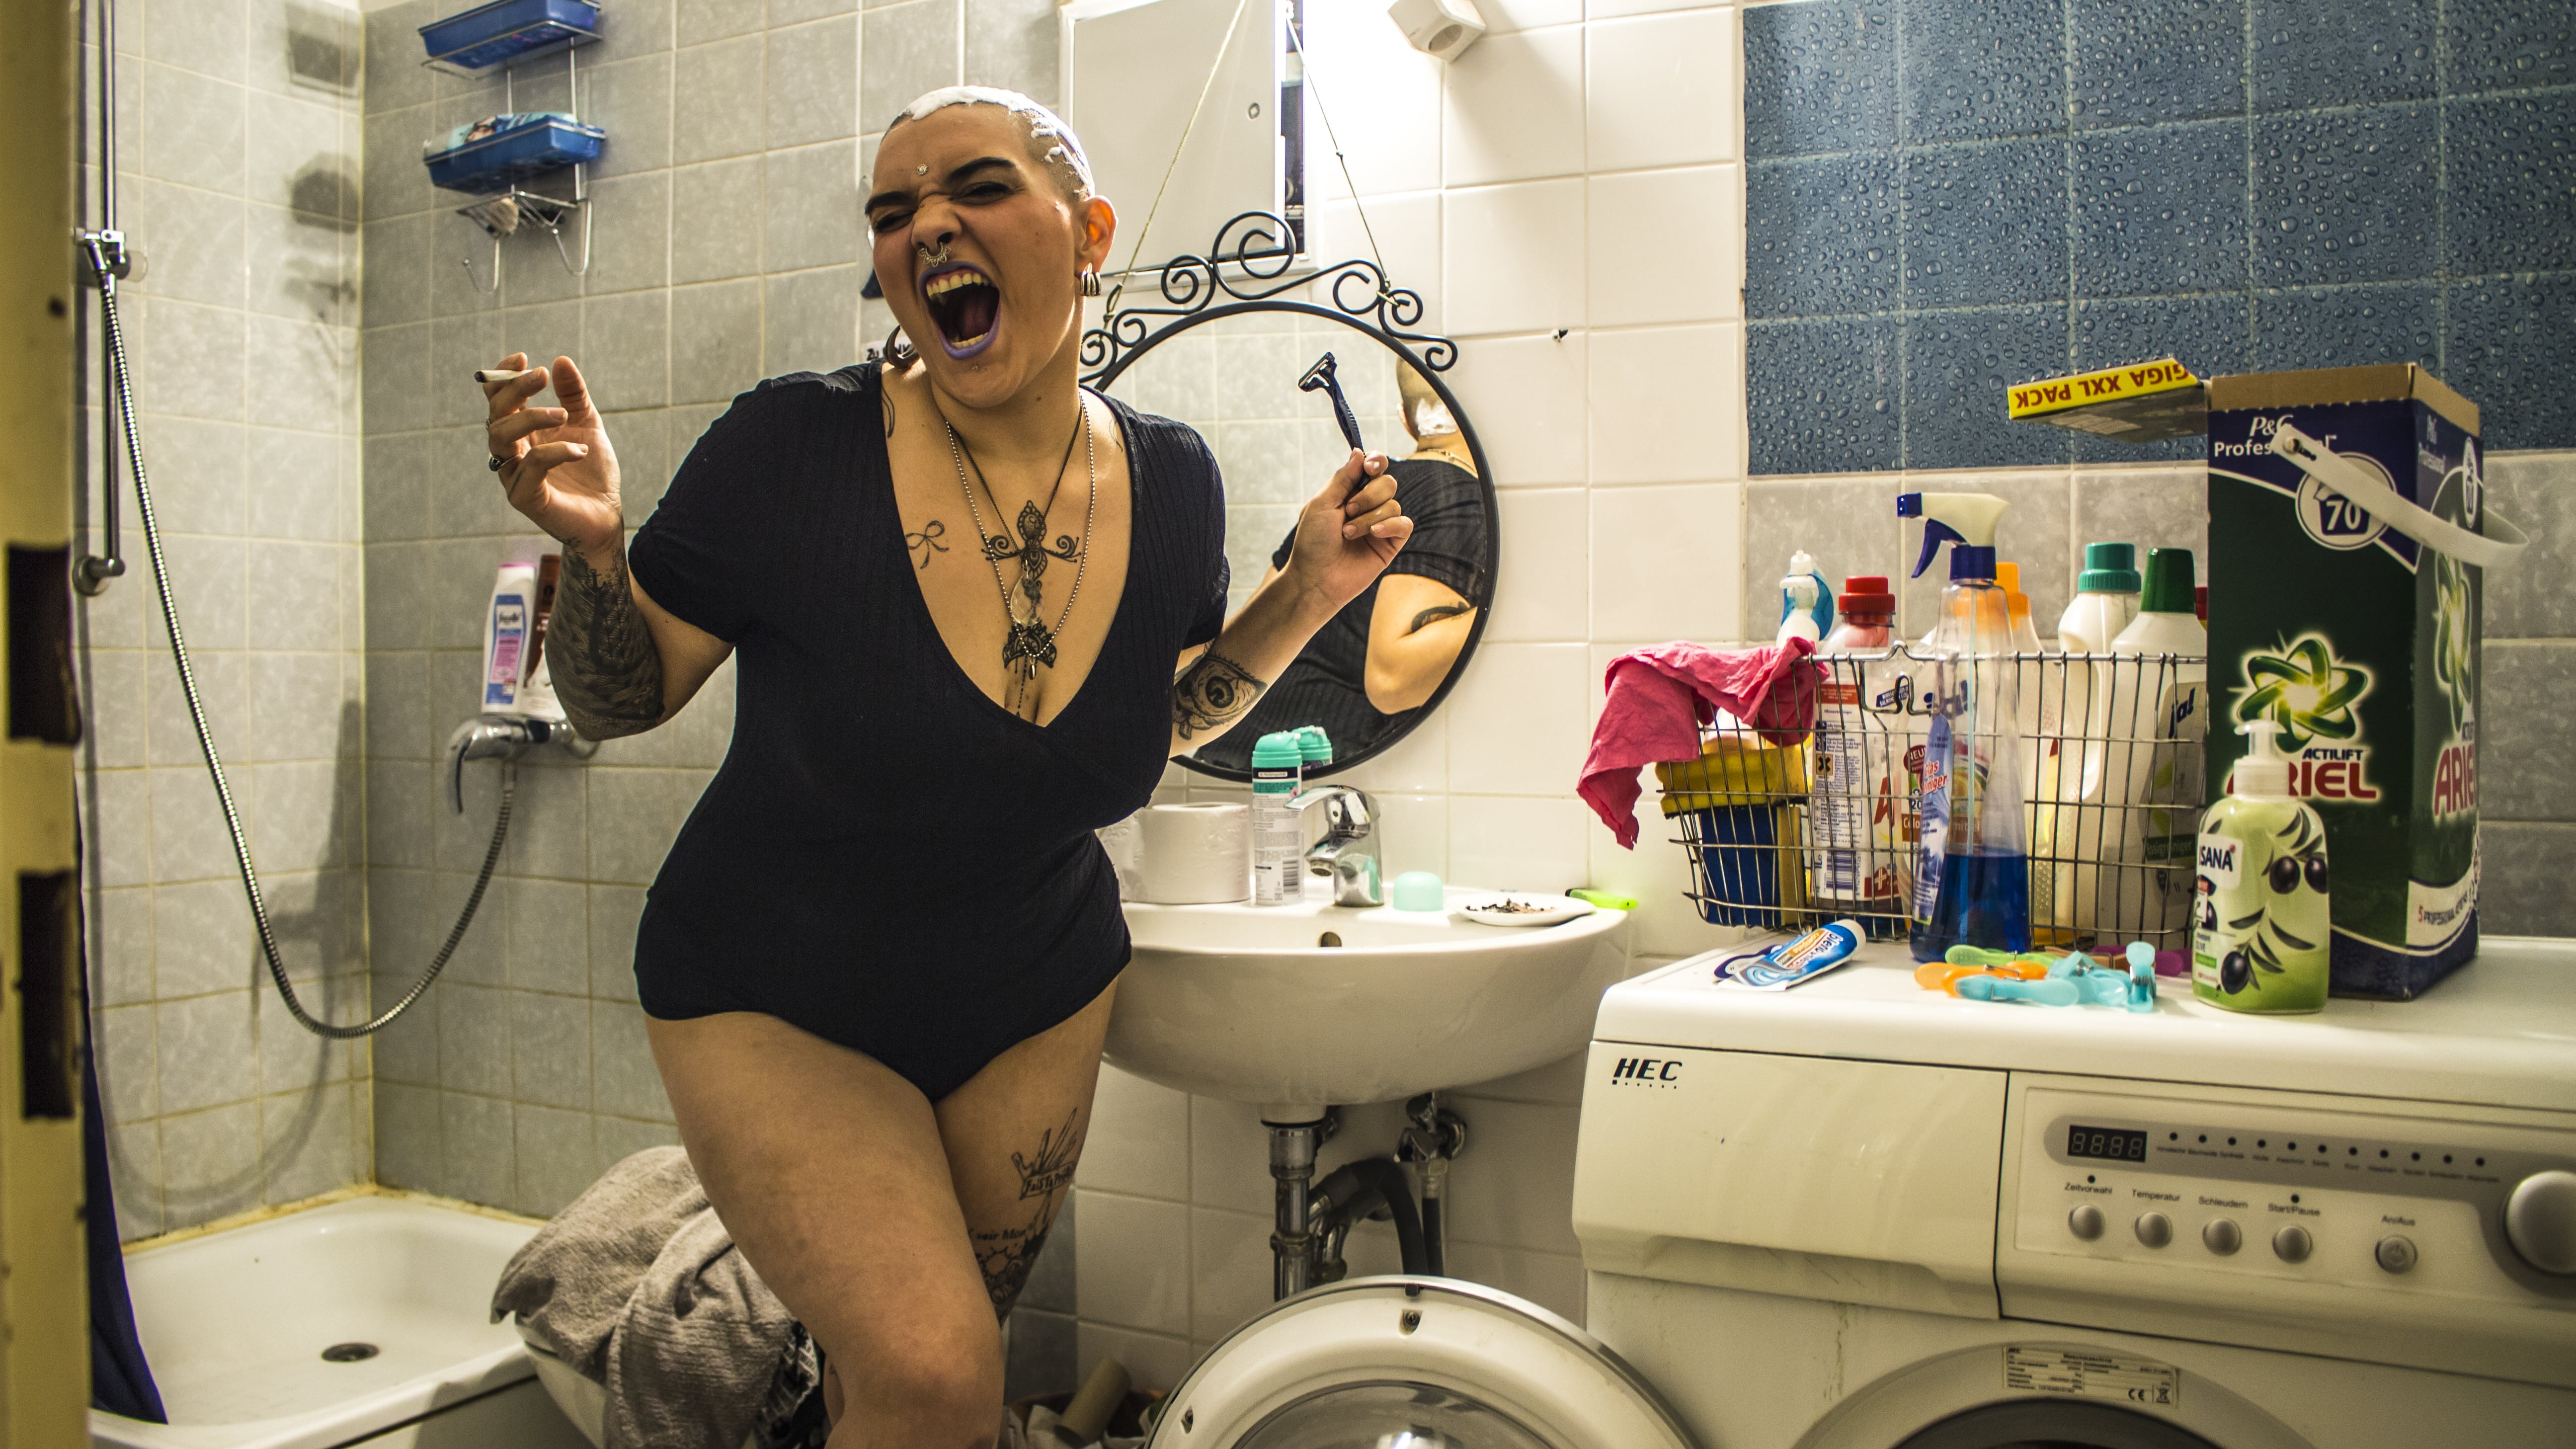 Woman smoking in a bathroom, photograph of Paco Pennino who won the Beazy Architecture contest